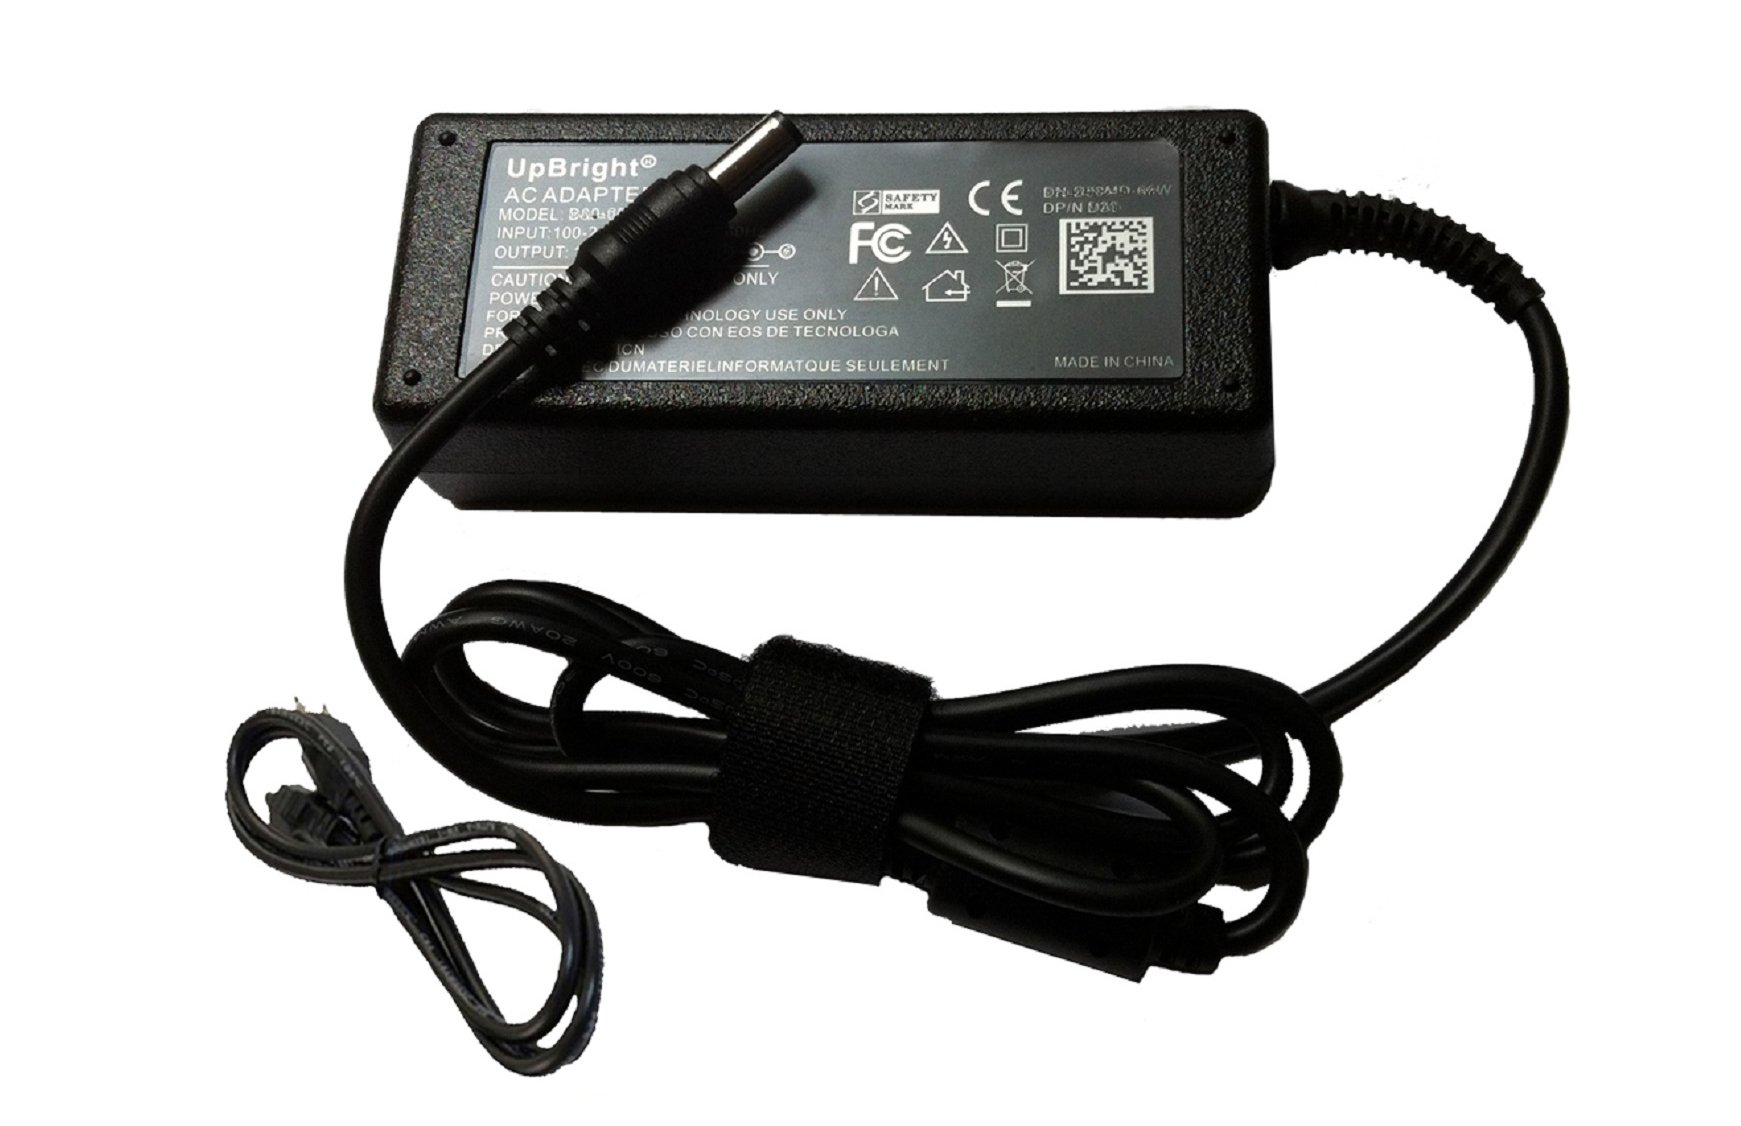 UpBright 12V 3.33A 40W AC/DC Adapter For Dell S2340 S2340M S2340Mc 23'' LED LCD HD TV Monitor Delta ADP-40DD B U1000EA 631639-001 631914-001 CWT KPA-040F DVR CRAIG CLC504E CLC501 FSP FSP040-DGAA1